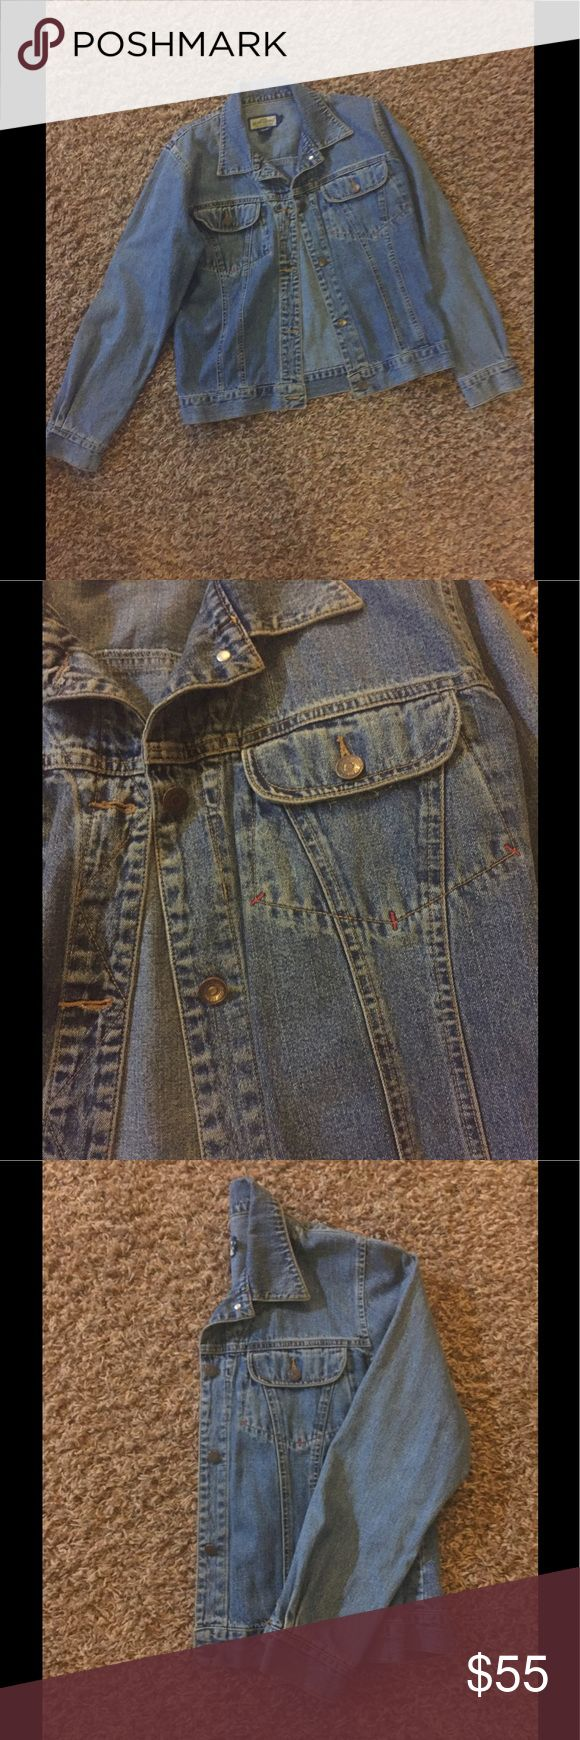 Vintage RUFF HEWN Denim Jacket 💙, size S Very cool 😎 vintage RUFF HEWN Denim Jacket, size S!  Dress it up or down! Very gently worn, awesome condition 😜 RUFF HEWN Jackets & Coats Jean Jackets